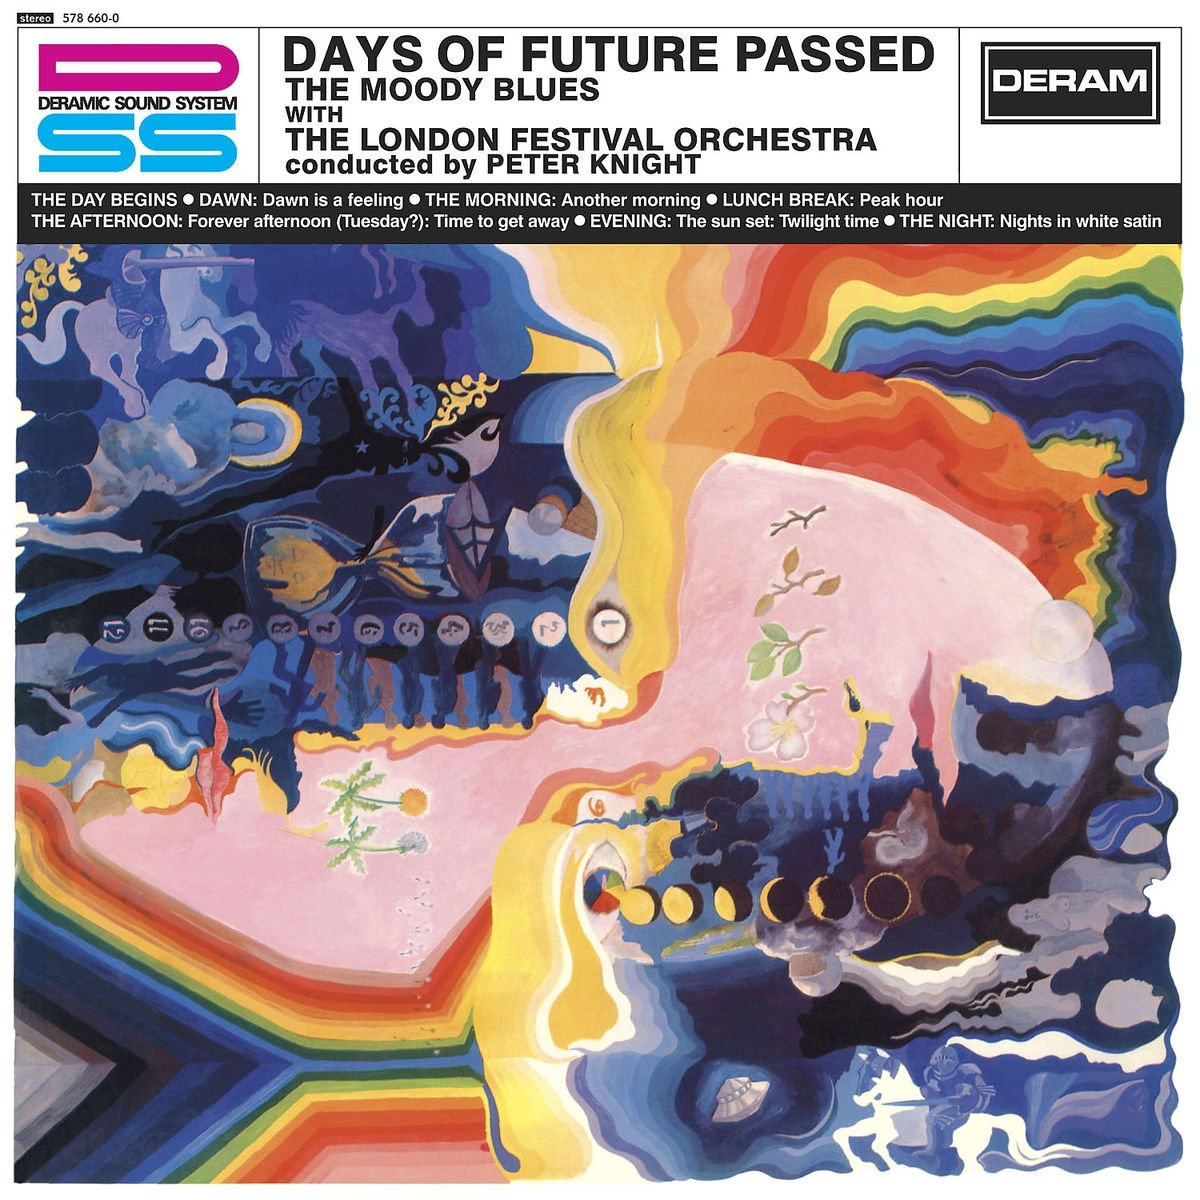 The Moody Blues - Days Of Future Passed (LP Vinyl)